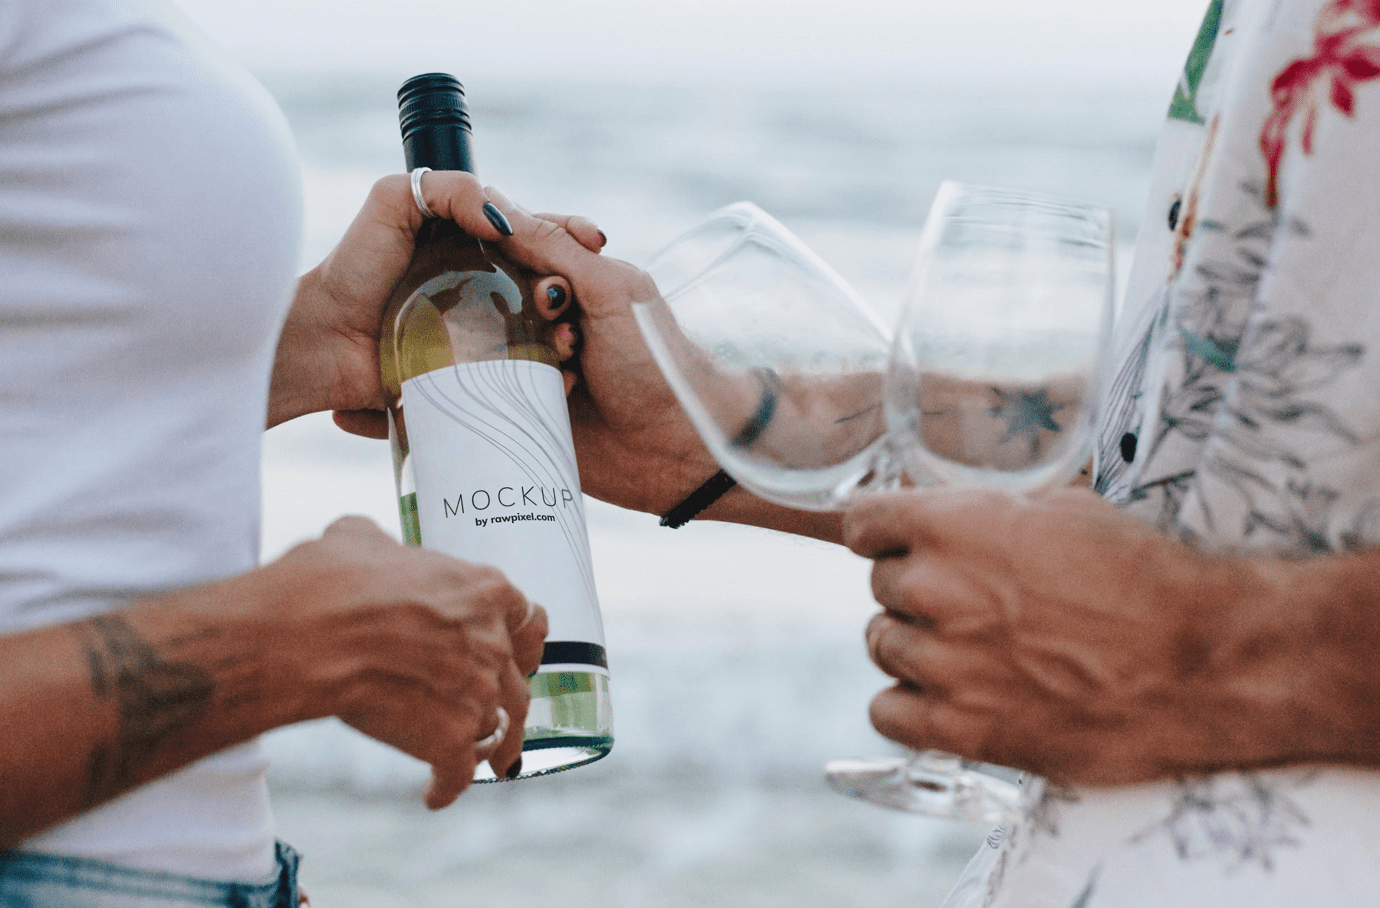 Man and woman holding hands and a bottle of wine with glasses; image by rawpixel.com from Pexels.com.